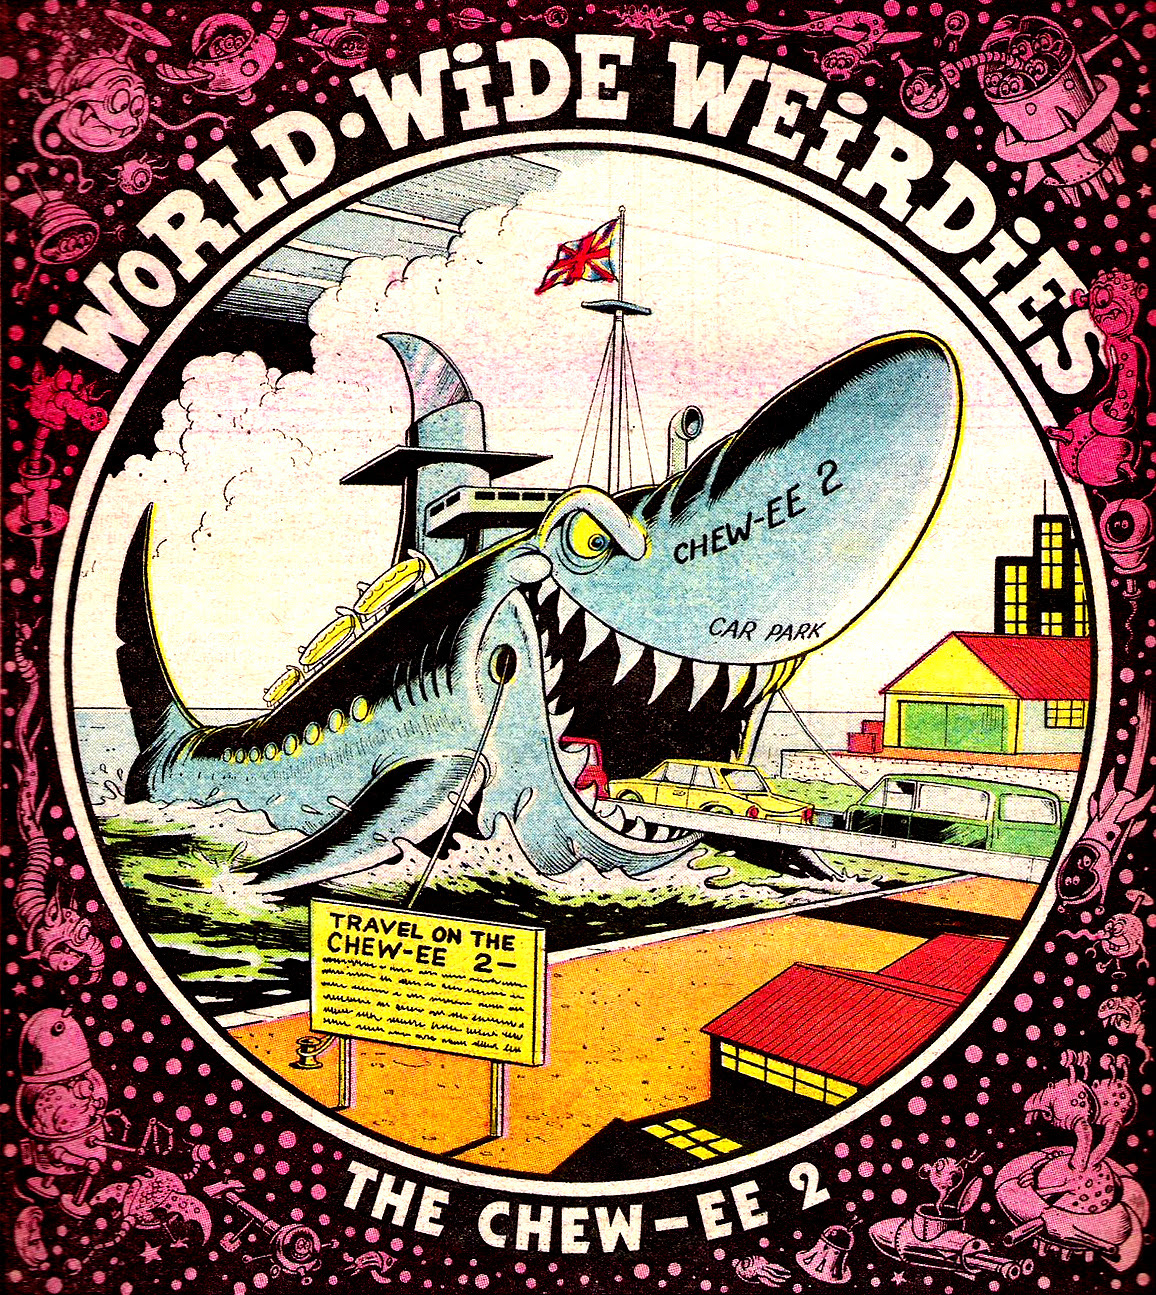 Ken Reid - World Wide Weirdies 89